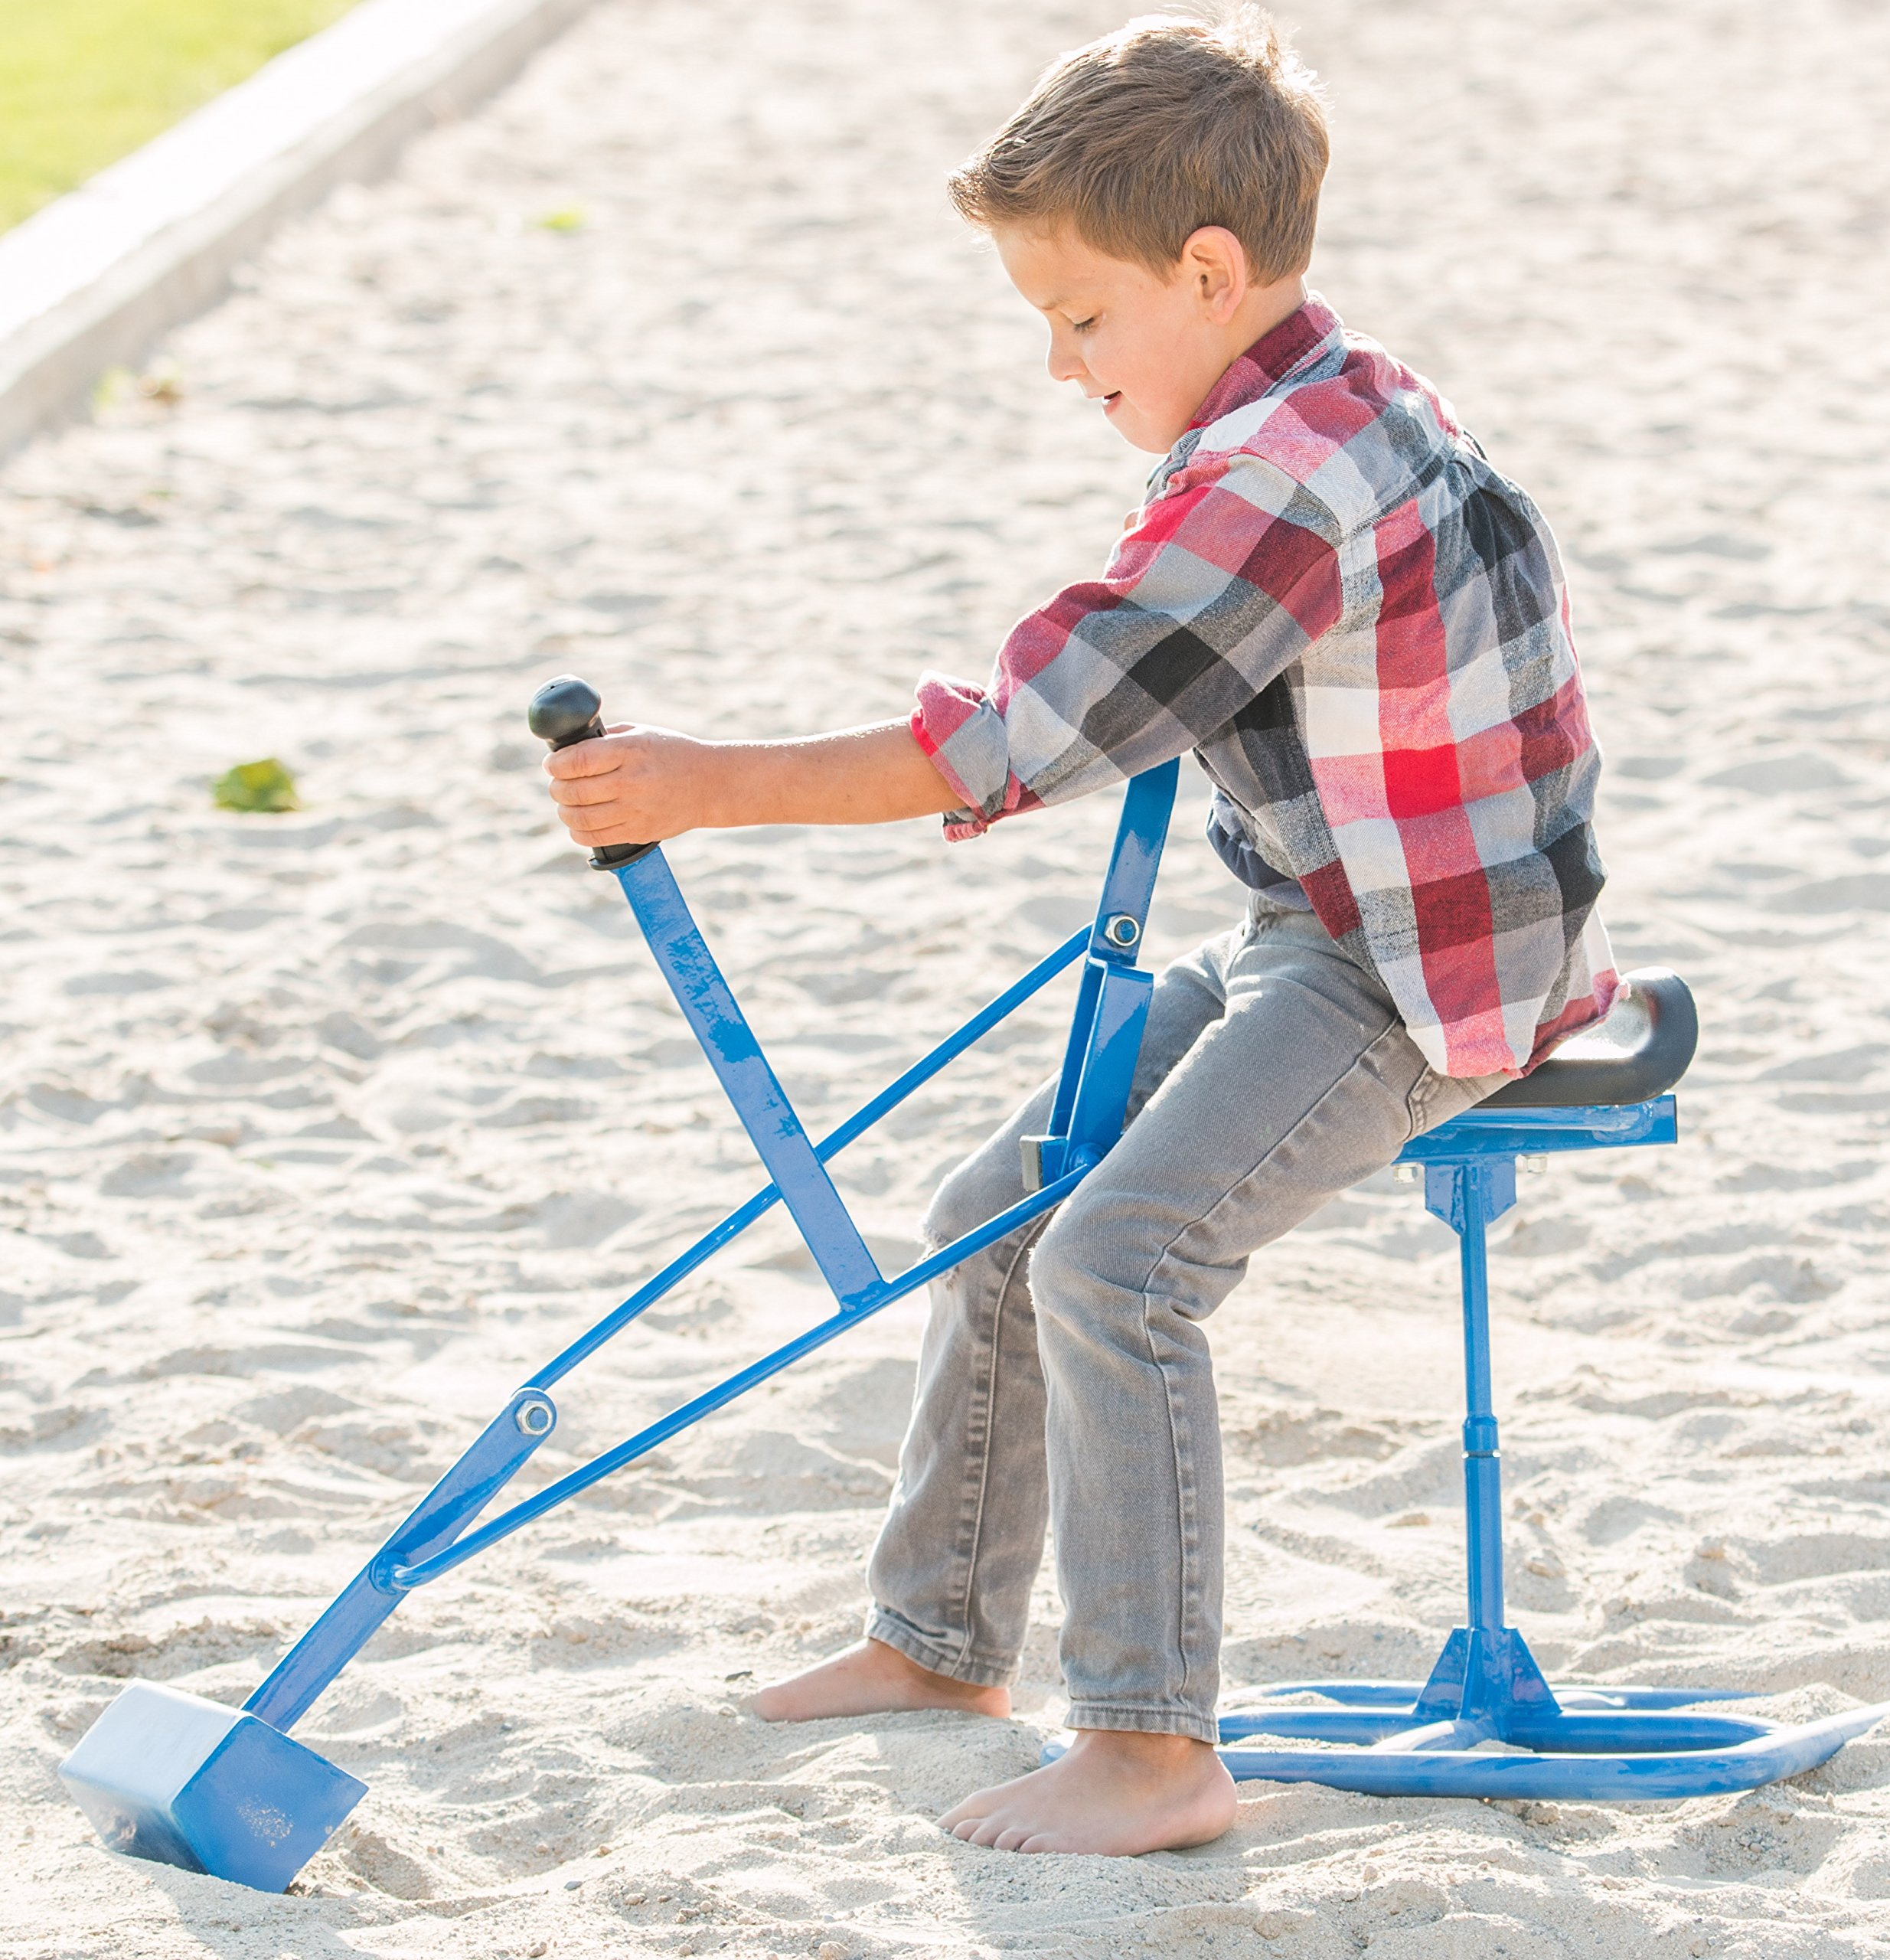 Childrensneeds.com Tough Kid Sand Digger Toy Backhoe: Commercial Grade Heavy Duty (Blue) by Childrensneeds.com (Image #4)